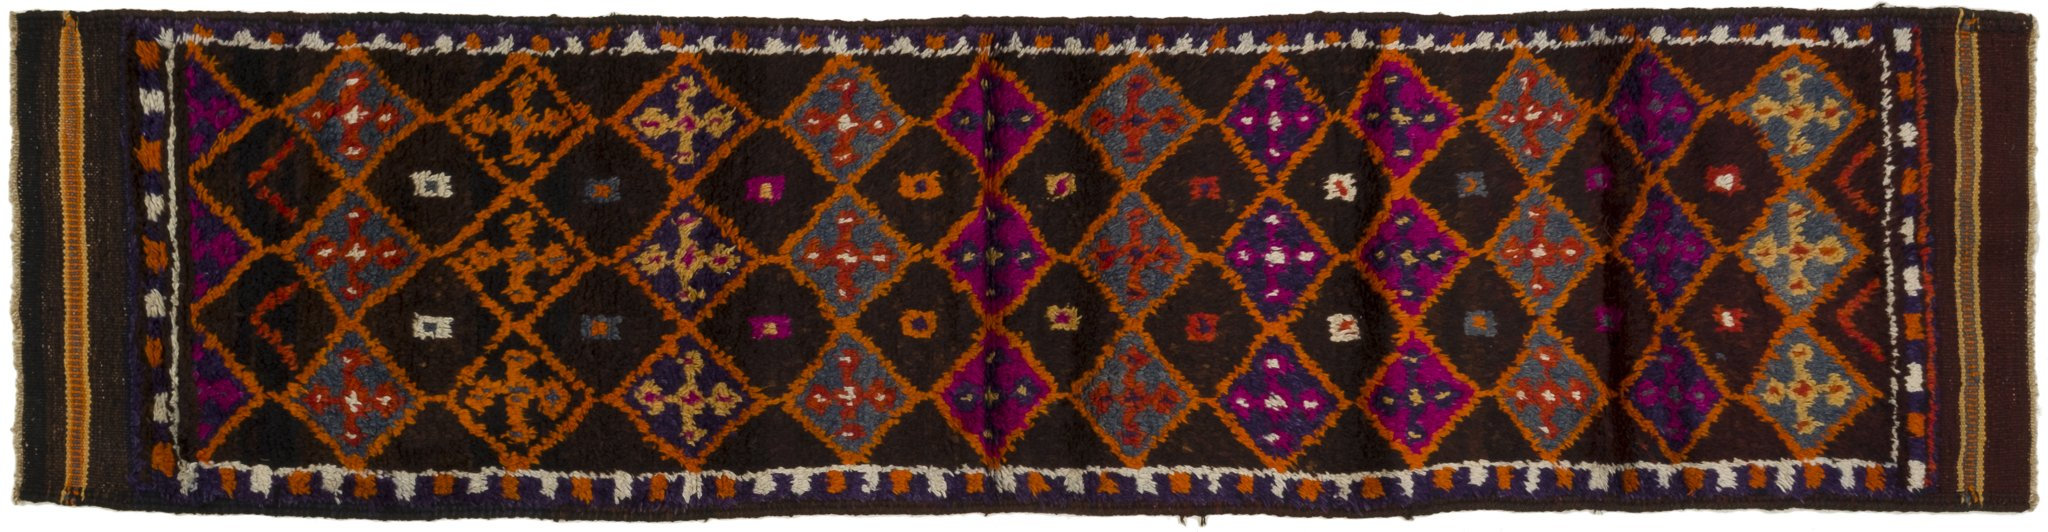 Vintage Turkish Runner Rug Andrius